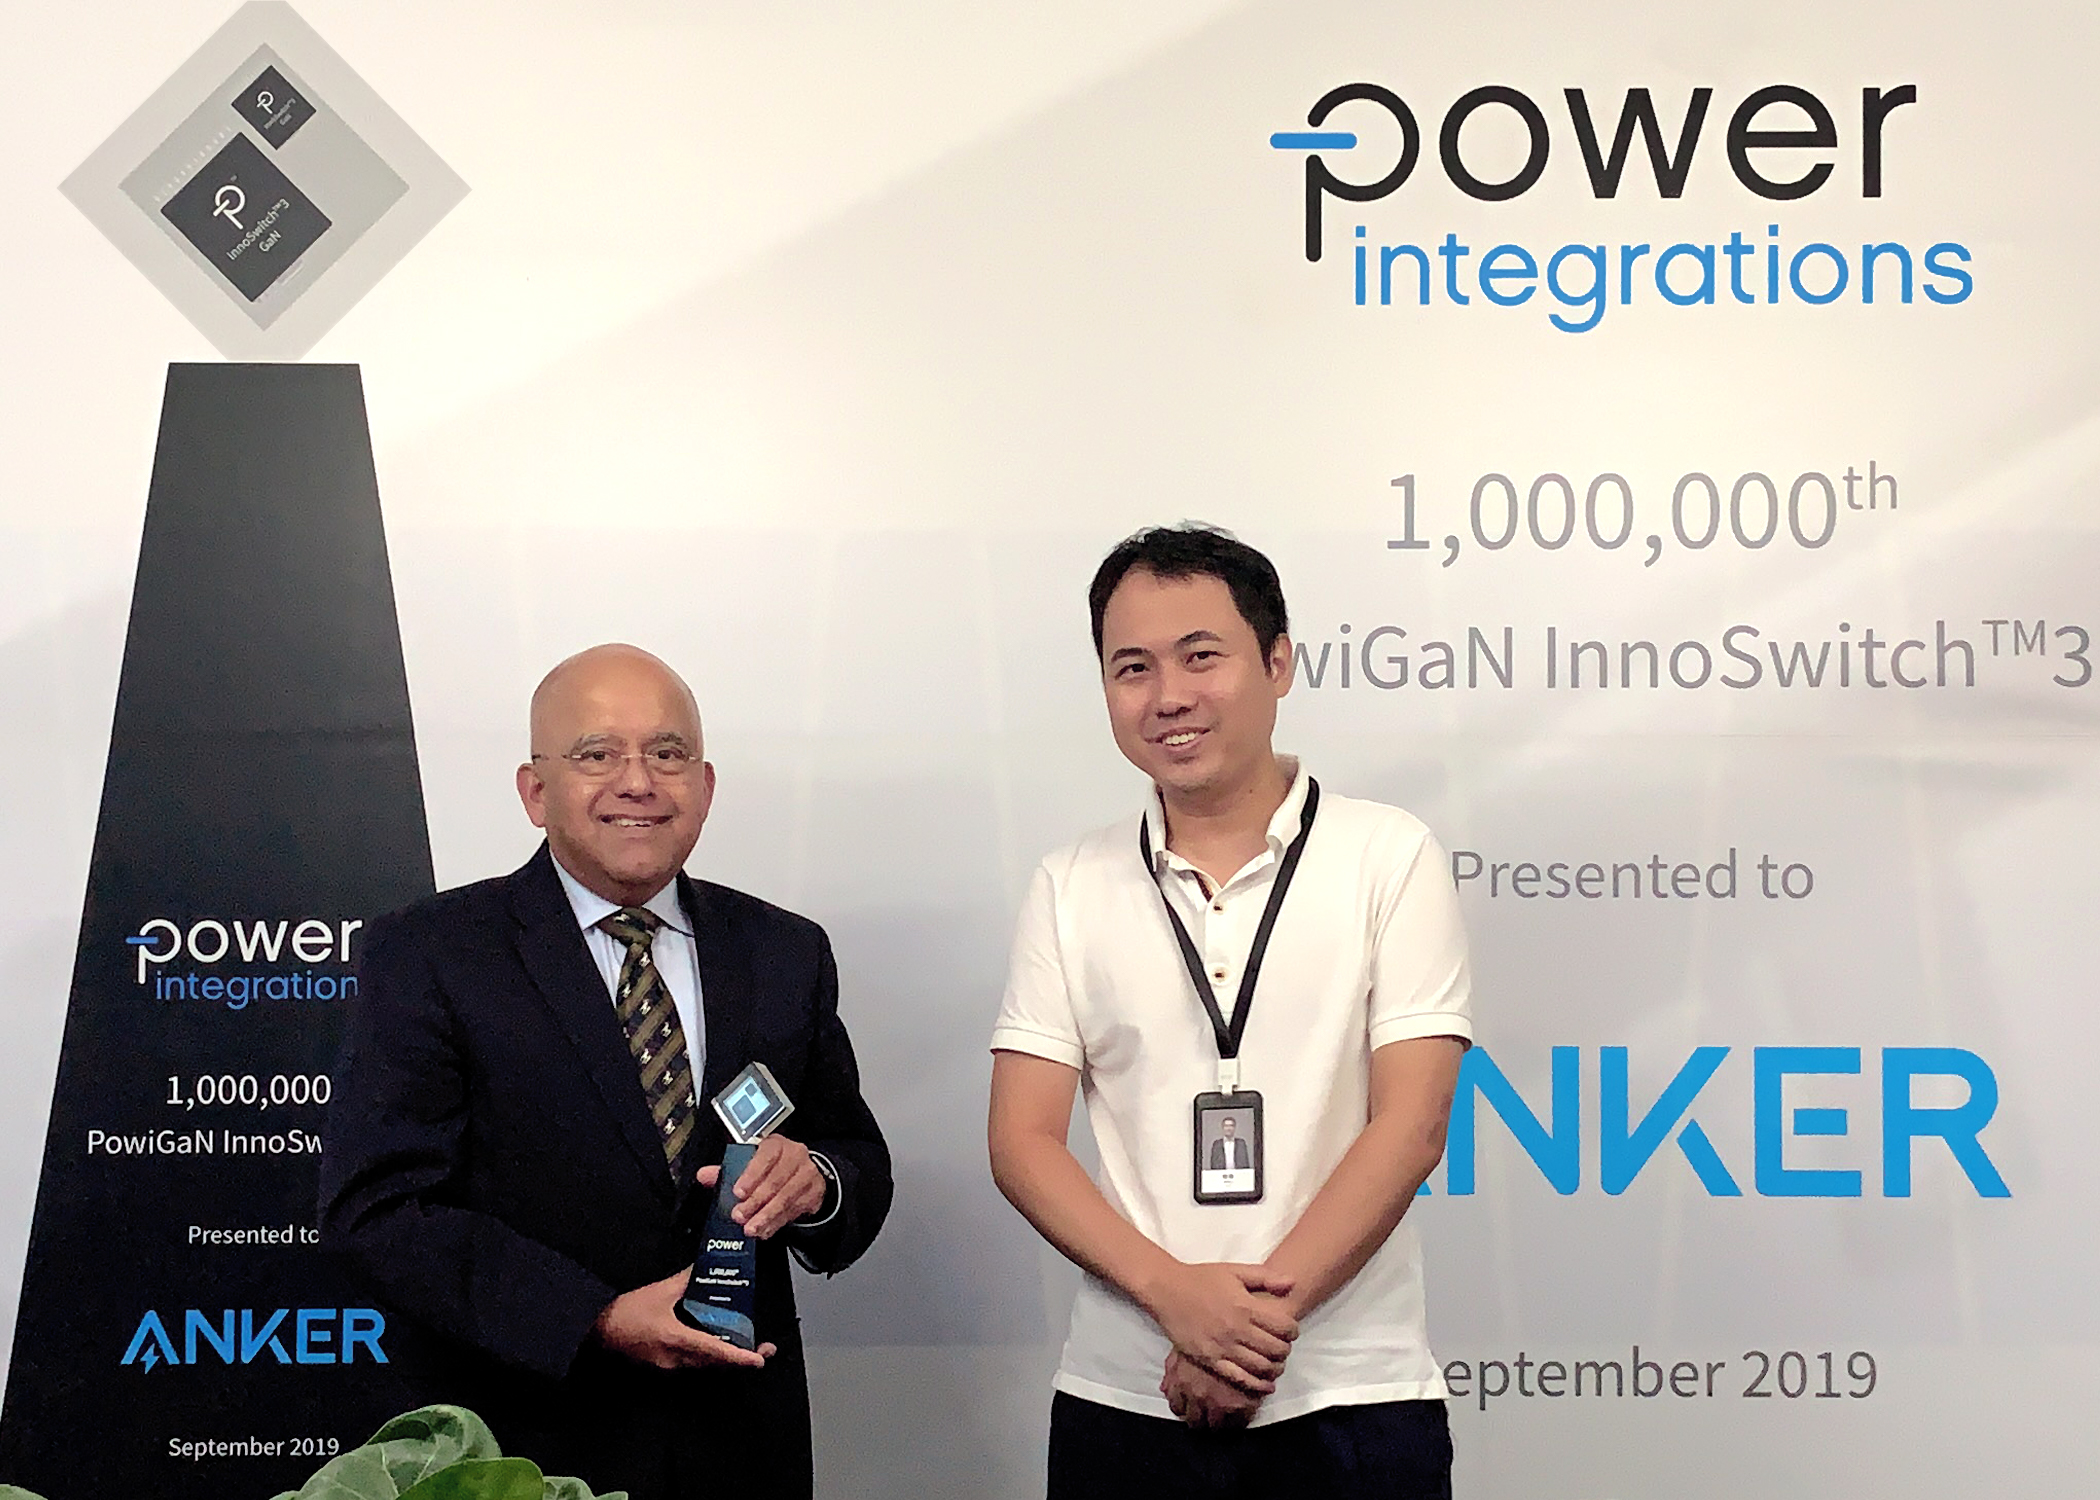 Power Integrations Delivers One-Millionth InnoSwitch3 IC